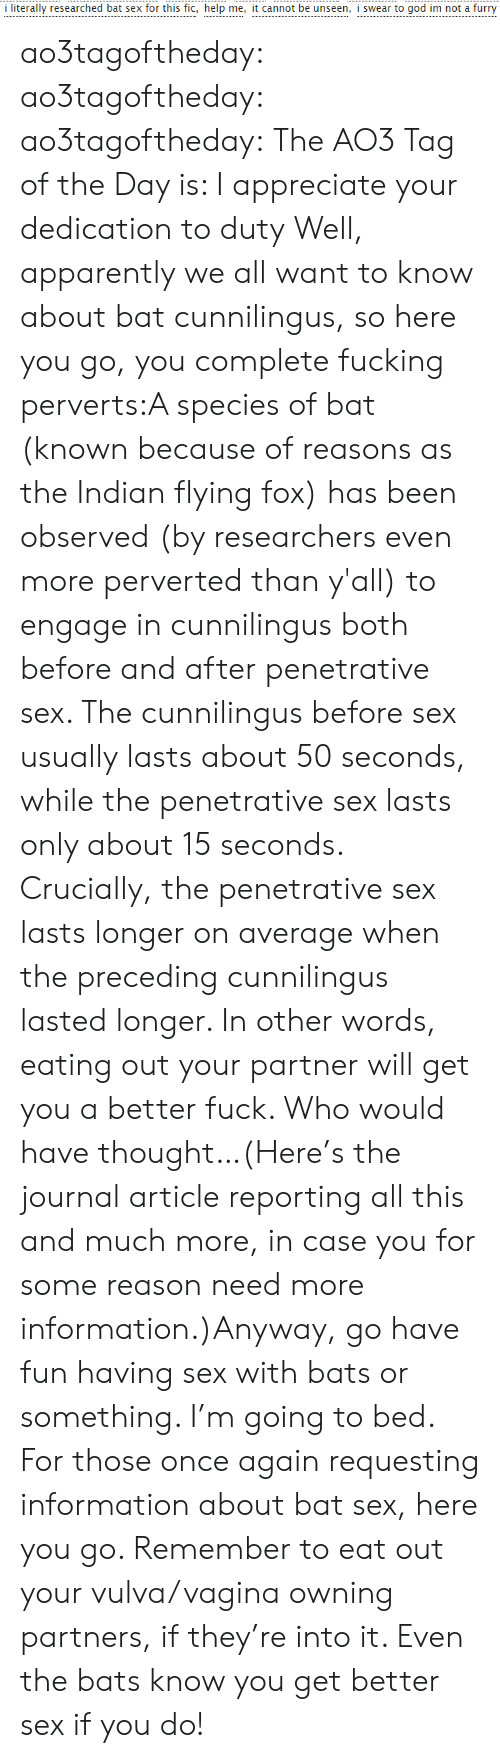 Apparently, God, and Sex: i literally researched bat sex for this fic, help me, it cannot be unseen, i swear to god im not a furry ao3tagoftheday:  ao3tagoftheday:  ao3tagoftheday:  The AO3 Tag of the Day is: I appreciate your dedication to duty  Well, apparently we all want to know about bat cunnilingus, so here you go, you complete fucking perverts:A species of bat (known because of reasons as the Indian flying fox) has been observed (by researchers even more perverted than y'all) to engage in cunnilingus both before and after penetrative sex. The cunnilingus before sex usually lasts about 50 seconds, while the penetrative sex lasts only about 15 seconds. Crucially, the penetrative sex lasts longer on average when the preceding cunnilingus lasted longer. In other words, eating out your partner will get you a better fuck. Who would have thought…(Here's the journal article reporting all this and much more, in case you for some reason need more information.)Anyway, go have fun having sex with bats or something. I'm going to bed.  For those once again requesting information about bat sex, here you go. Remember to eat out your vulva/vagina owning partners, if they're into it. Even the bats know you get better sex if you do!